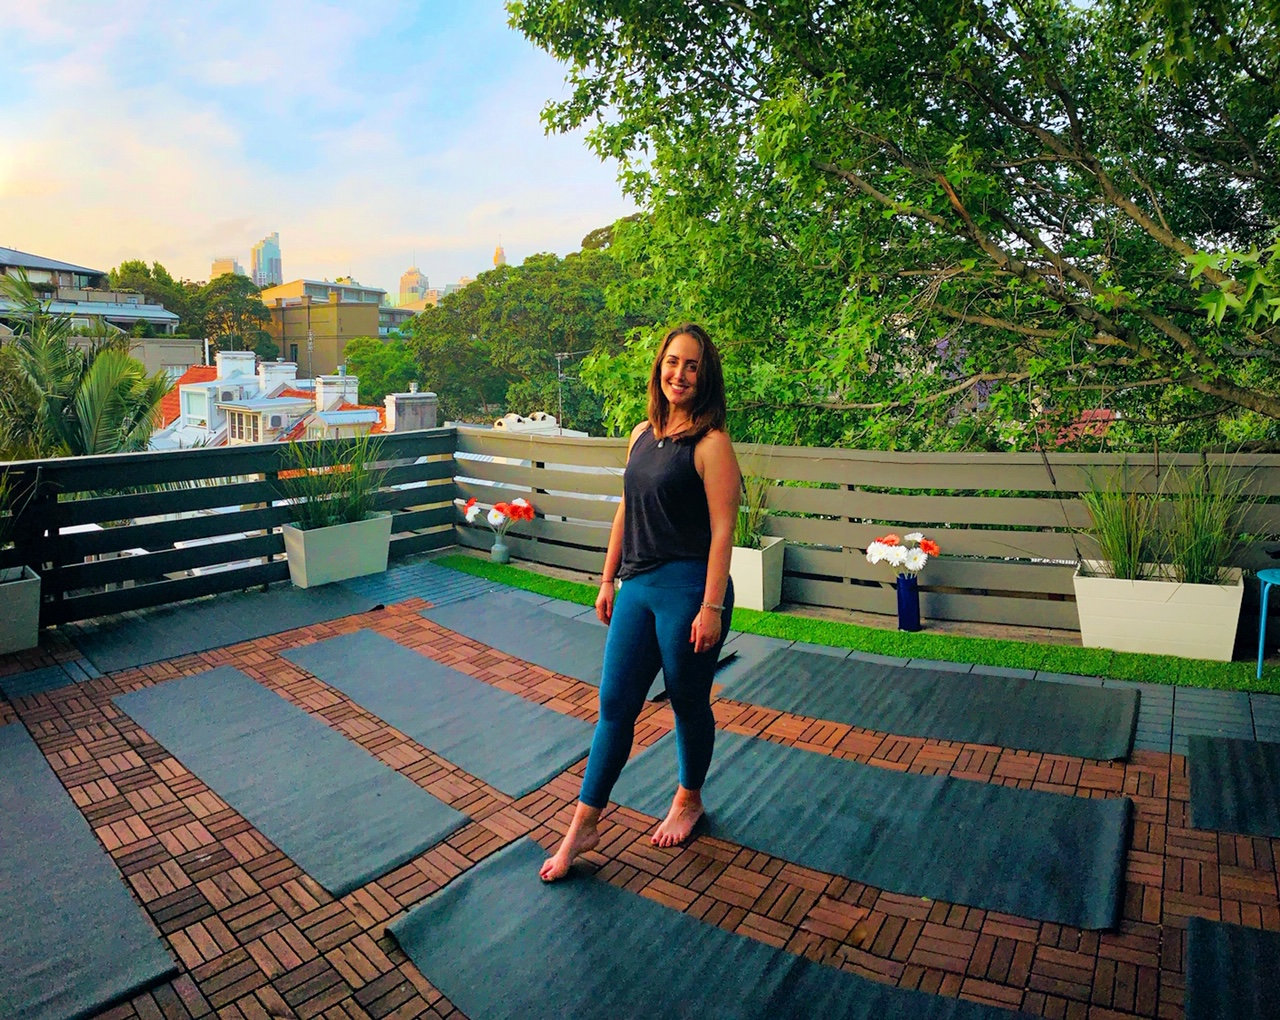 Sydney Rooftop Yoga - casual class